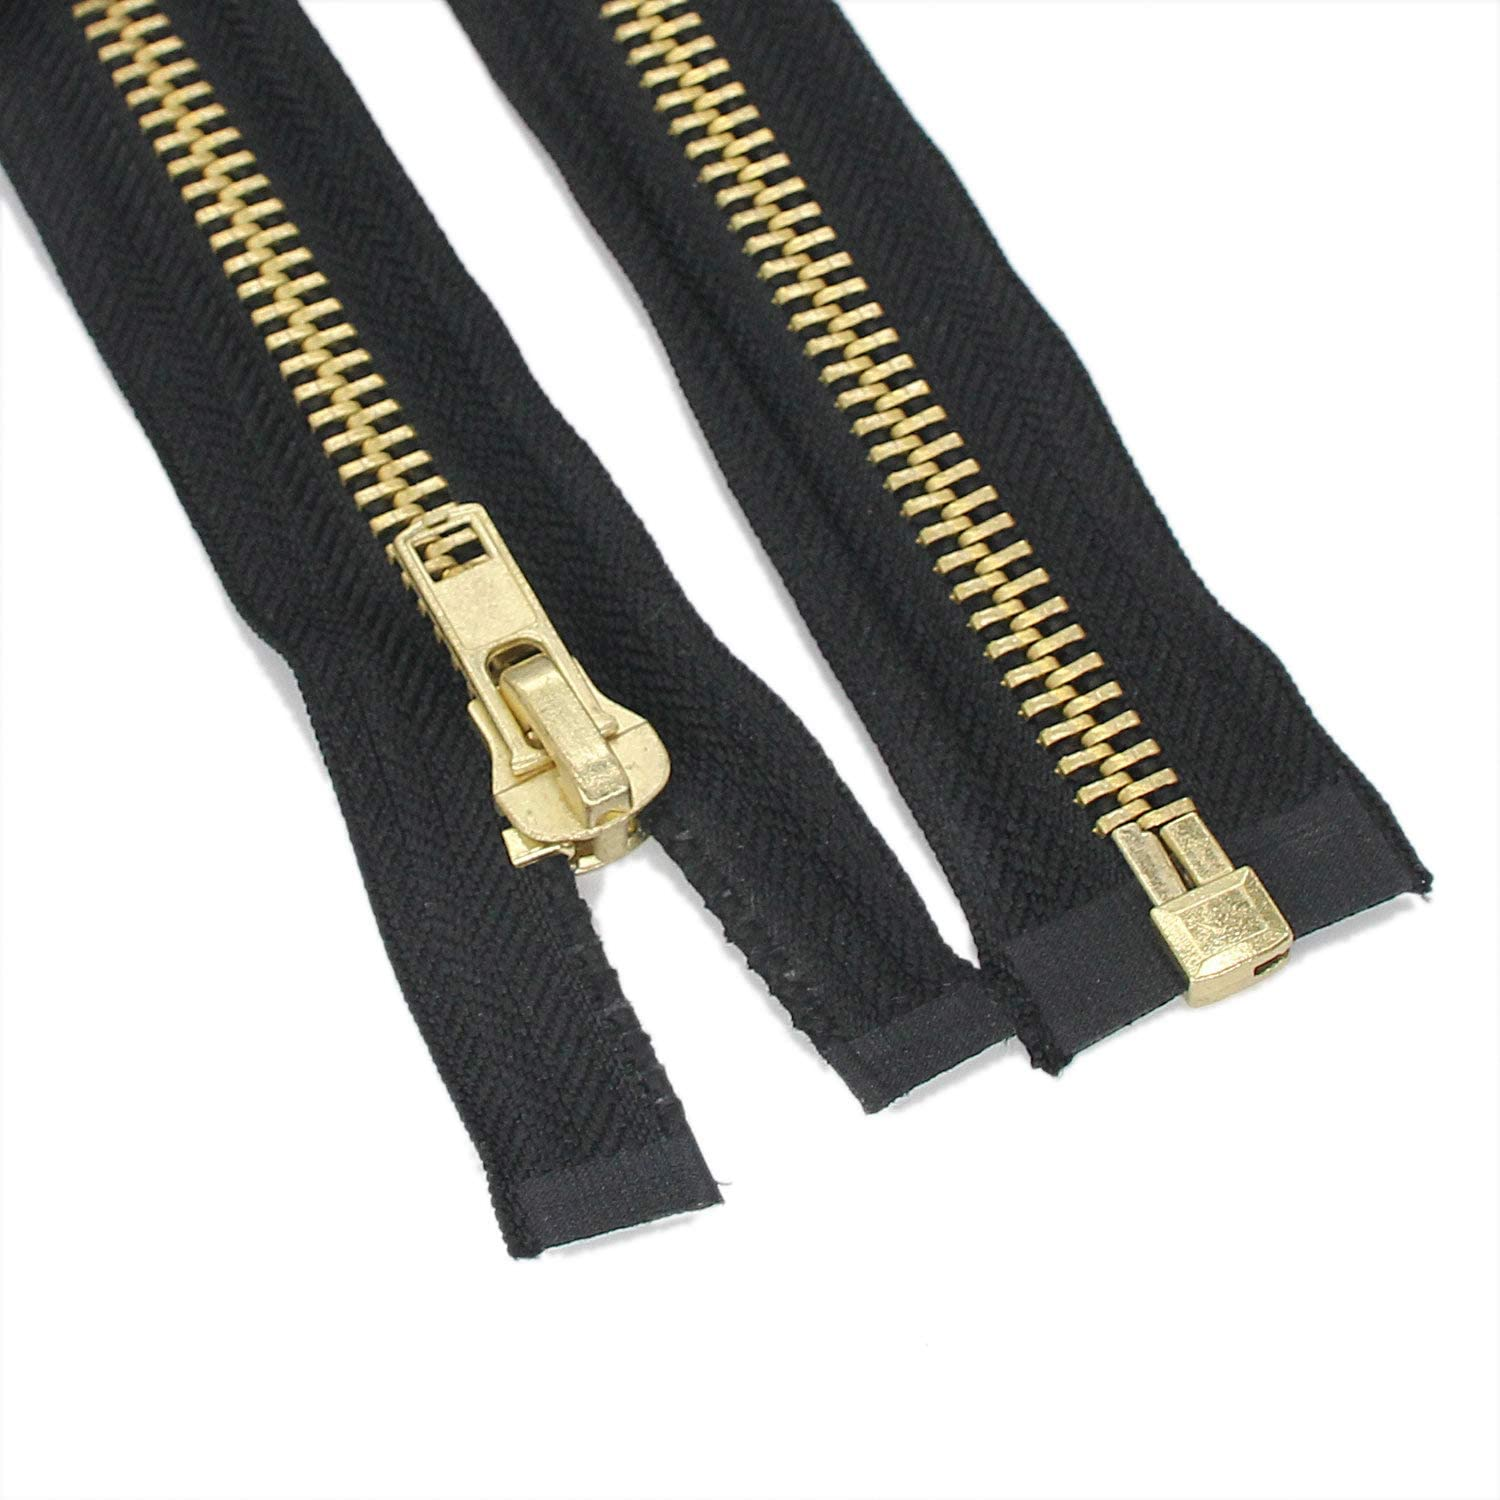 YaHoGa 2PCS #5 25 Inch Antique Silver Separating Jacket Zipper Y-Teeth Gunmetal Metal Zippers for Jackets Sewing Coats Crafts 25 Anti-Silver